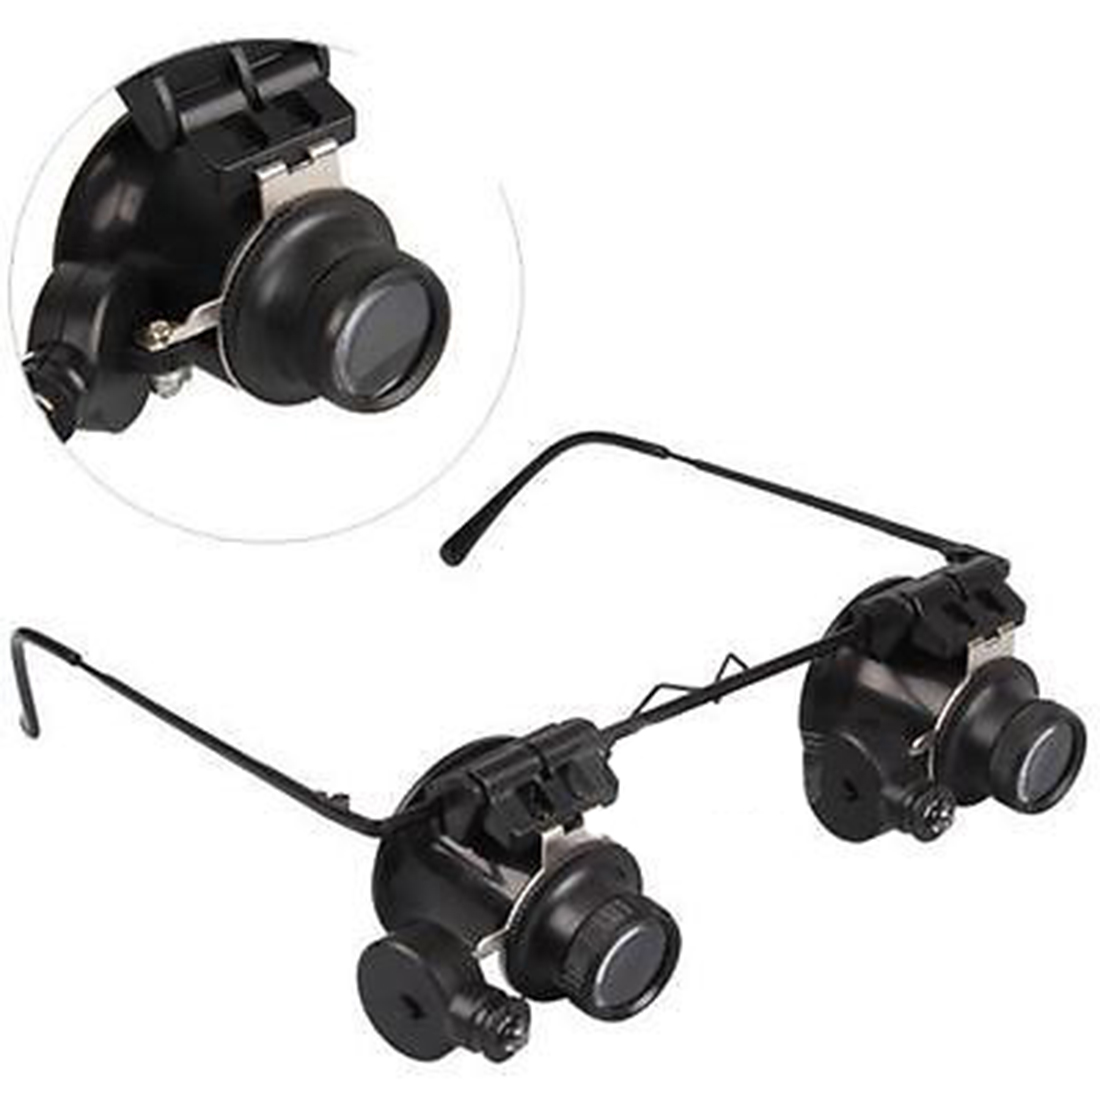 Dual Eye Glasses Loupe Lens LED 20X Magnifier Magnifying Jeweler Watch Repair Loupe Magnification Jewellers Loupe new design binocular glasses type 20x watch repair magnifier with led light drop shipping shipping